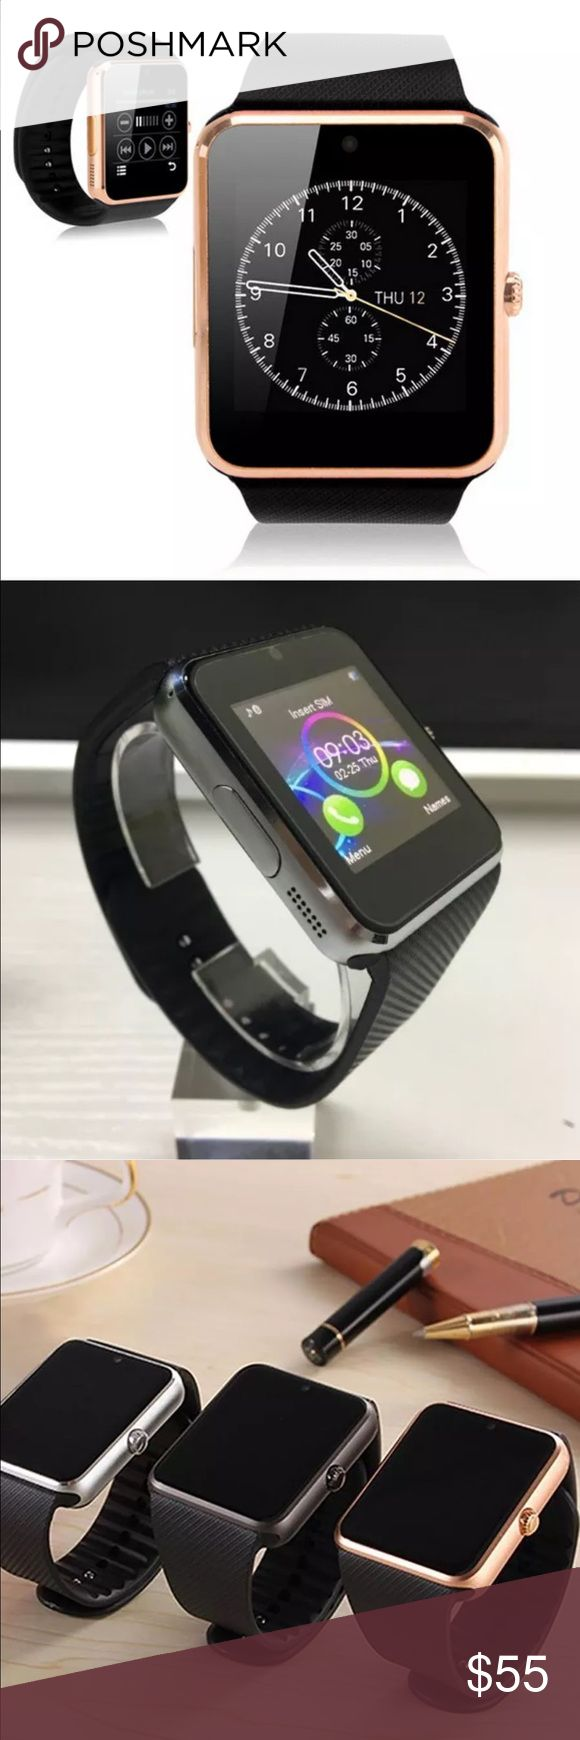 Smart watch GT08 Smart Watch . Screen type Capacitive Touch Screen . World TimeTime/Alarm clock/Pedometer/MP3/Sleep Monitor/Remote Camera/Wap/QQ Wechat/Bluetooth Music/Sedentary remind/Anti-lost/Flight mode 1. There is no APK for iPhone, so five functions can't sync with iPhone 1. Anti-lost, 2. Messaging, 3 Notifier, 4. Remote Camera, 5. Bluetooth Music. But all other functions in the description can use normally because no need to use app. 2. Android Phone can support all functions in the…